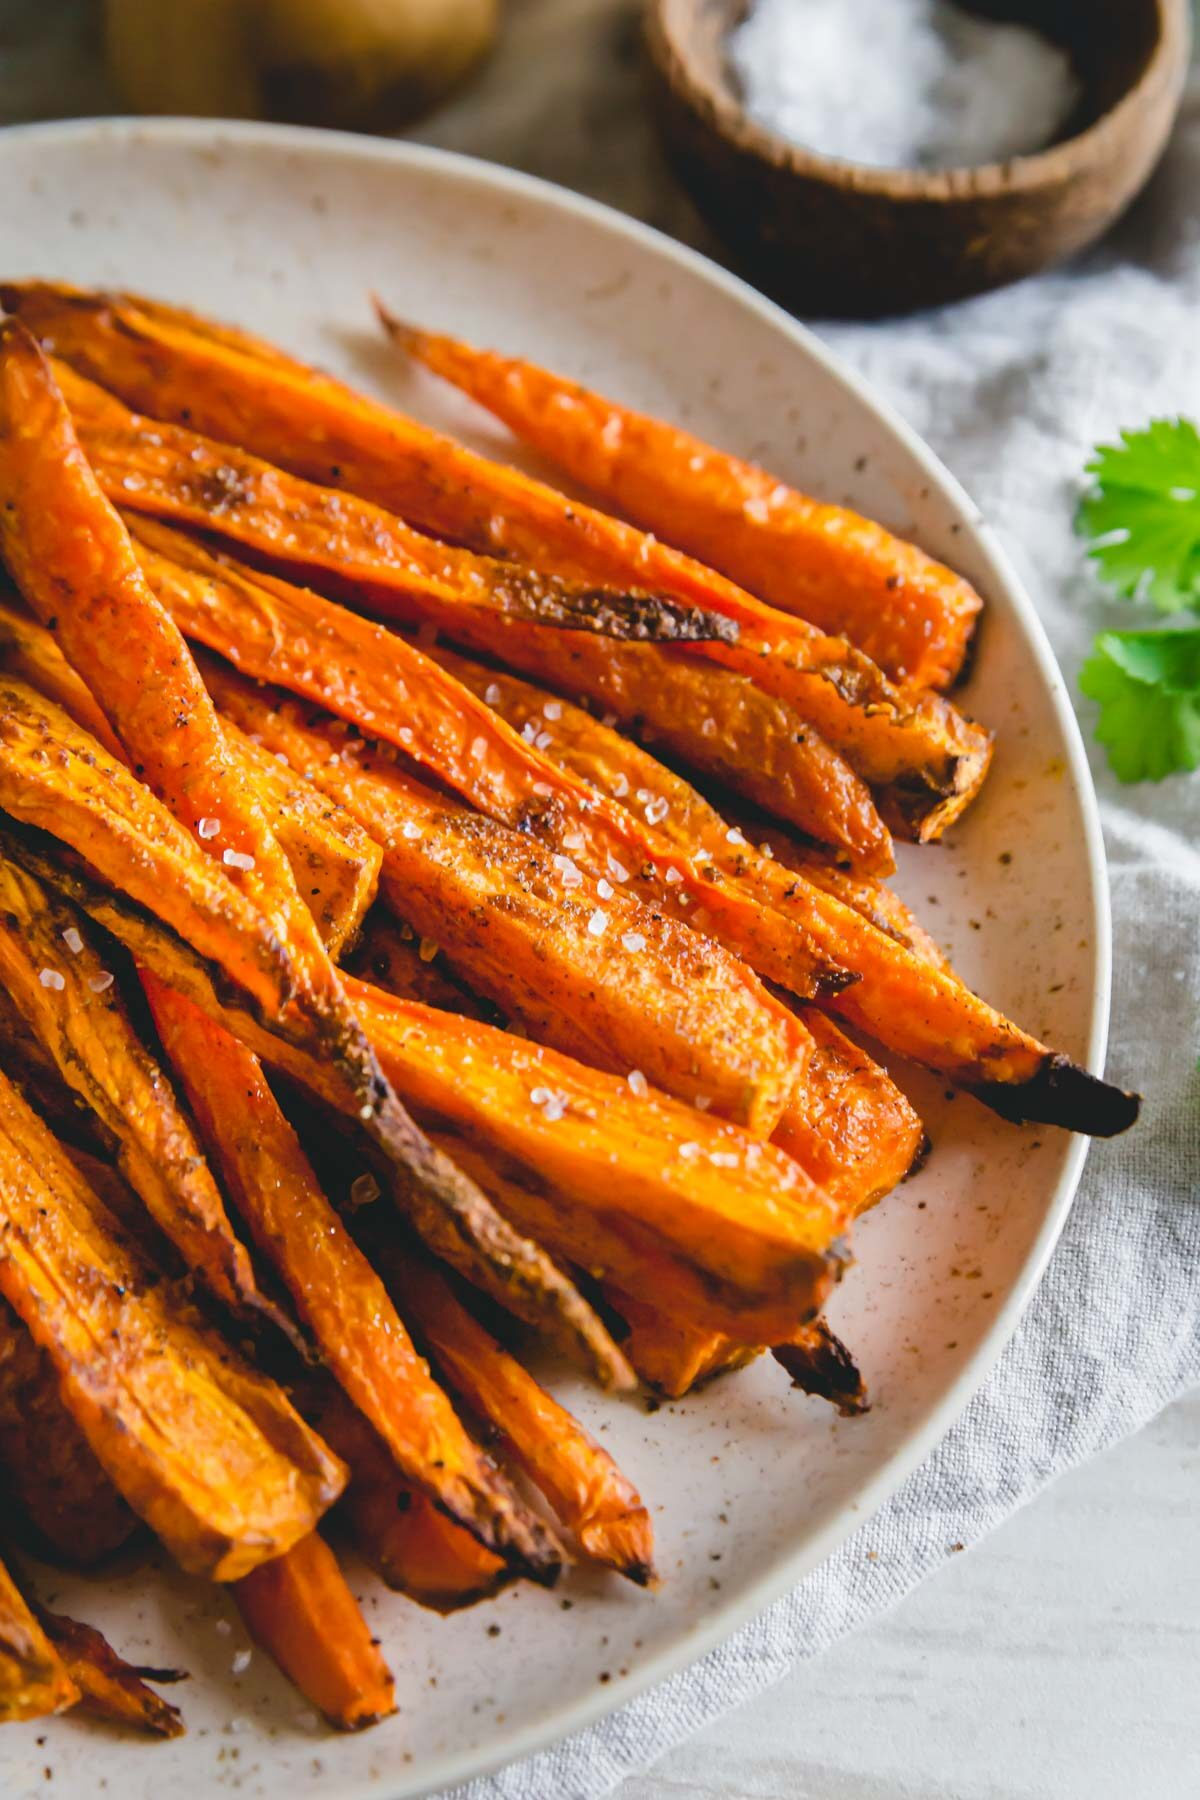 Consider these easy air fryer carrots roasted with simple savory spices for an easy spring side dish.